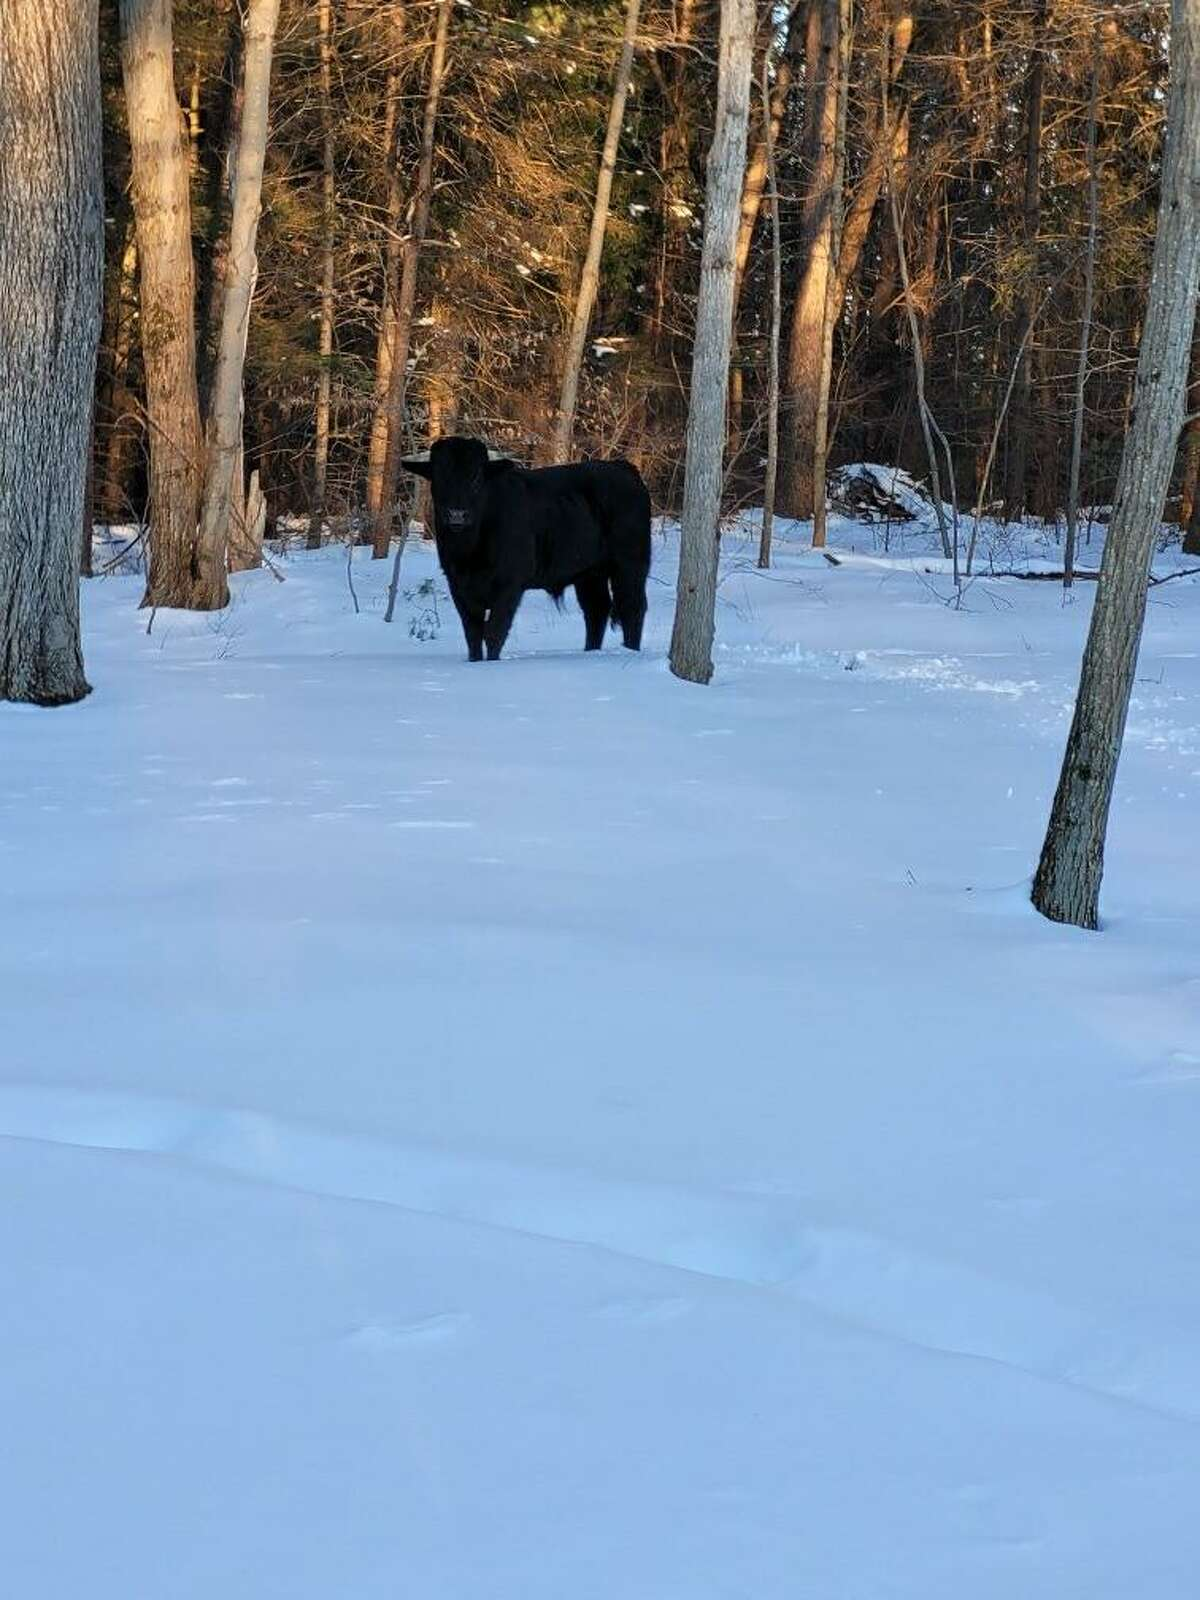 Buddy the beefalo seen in February.